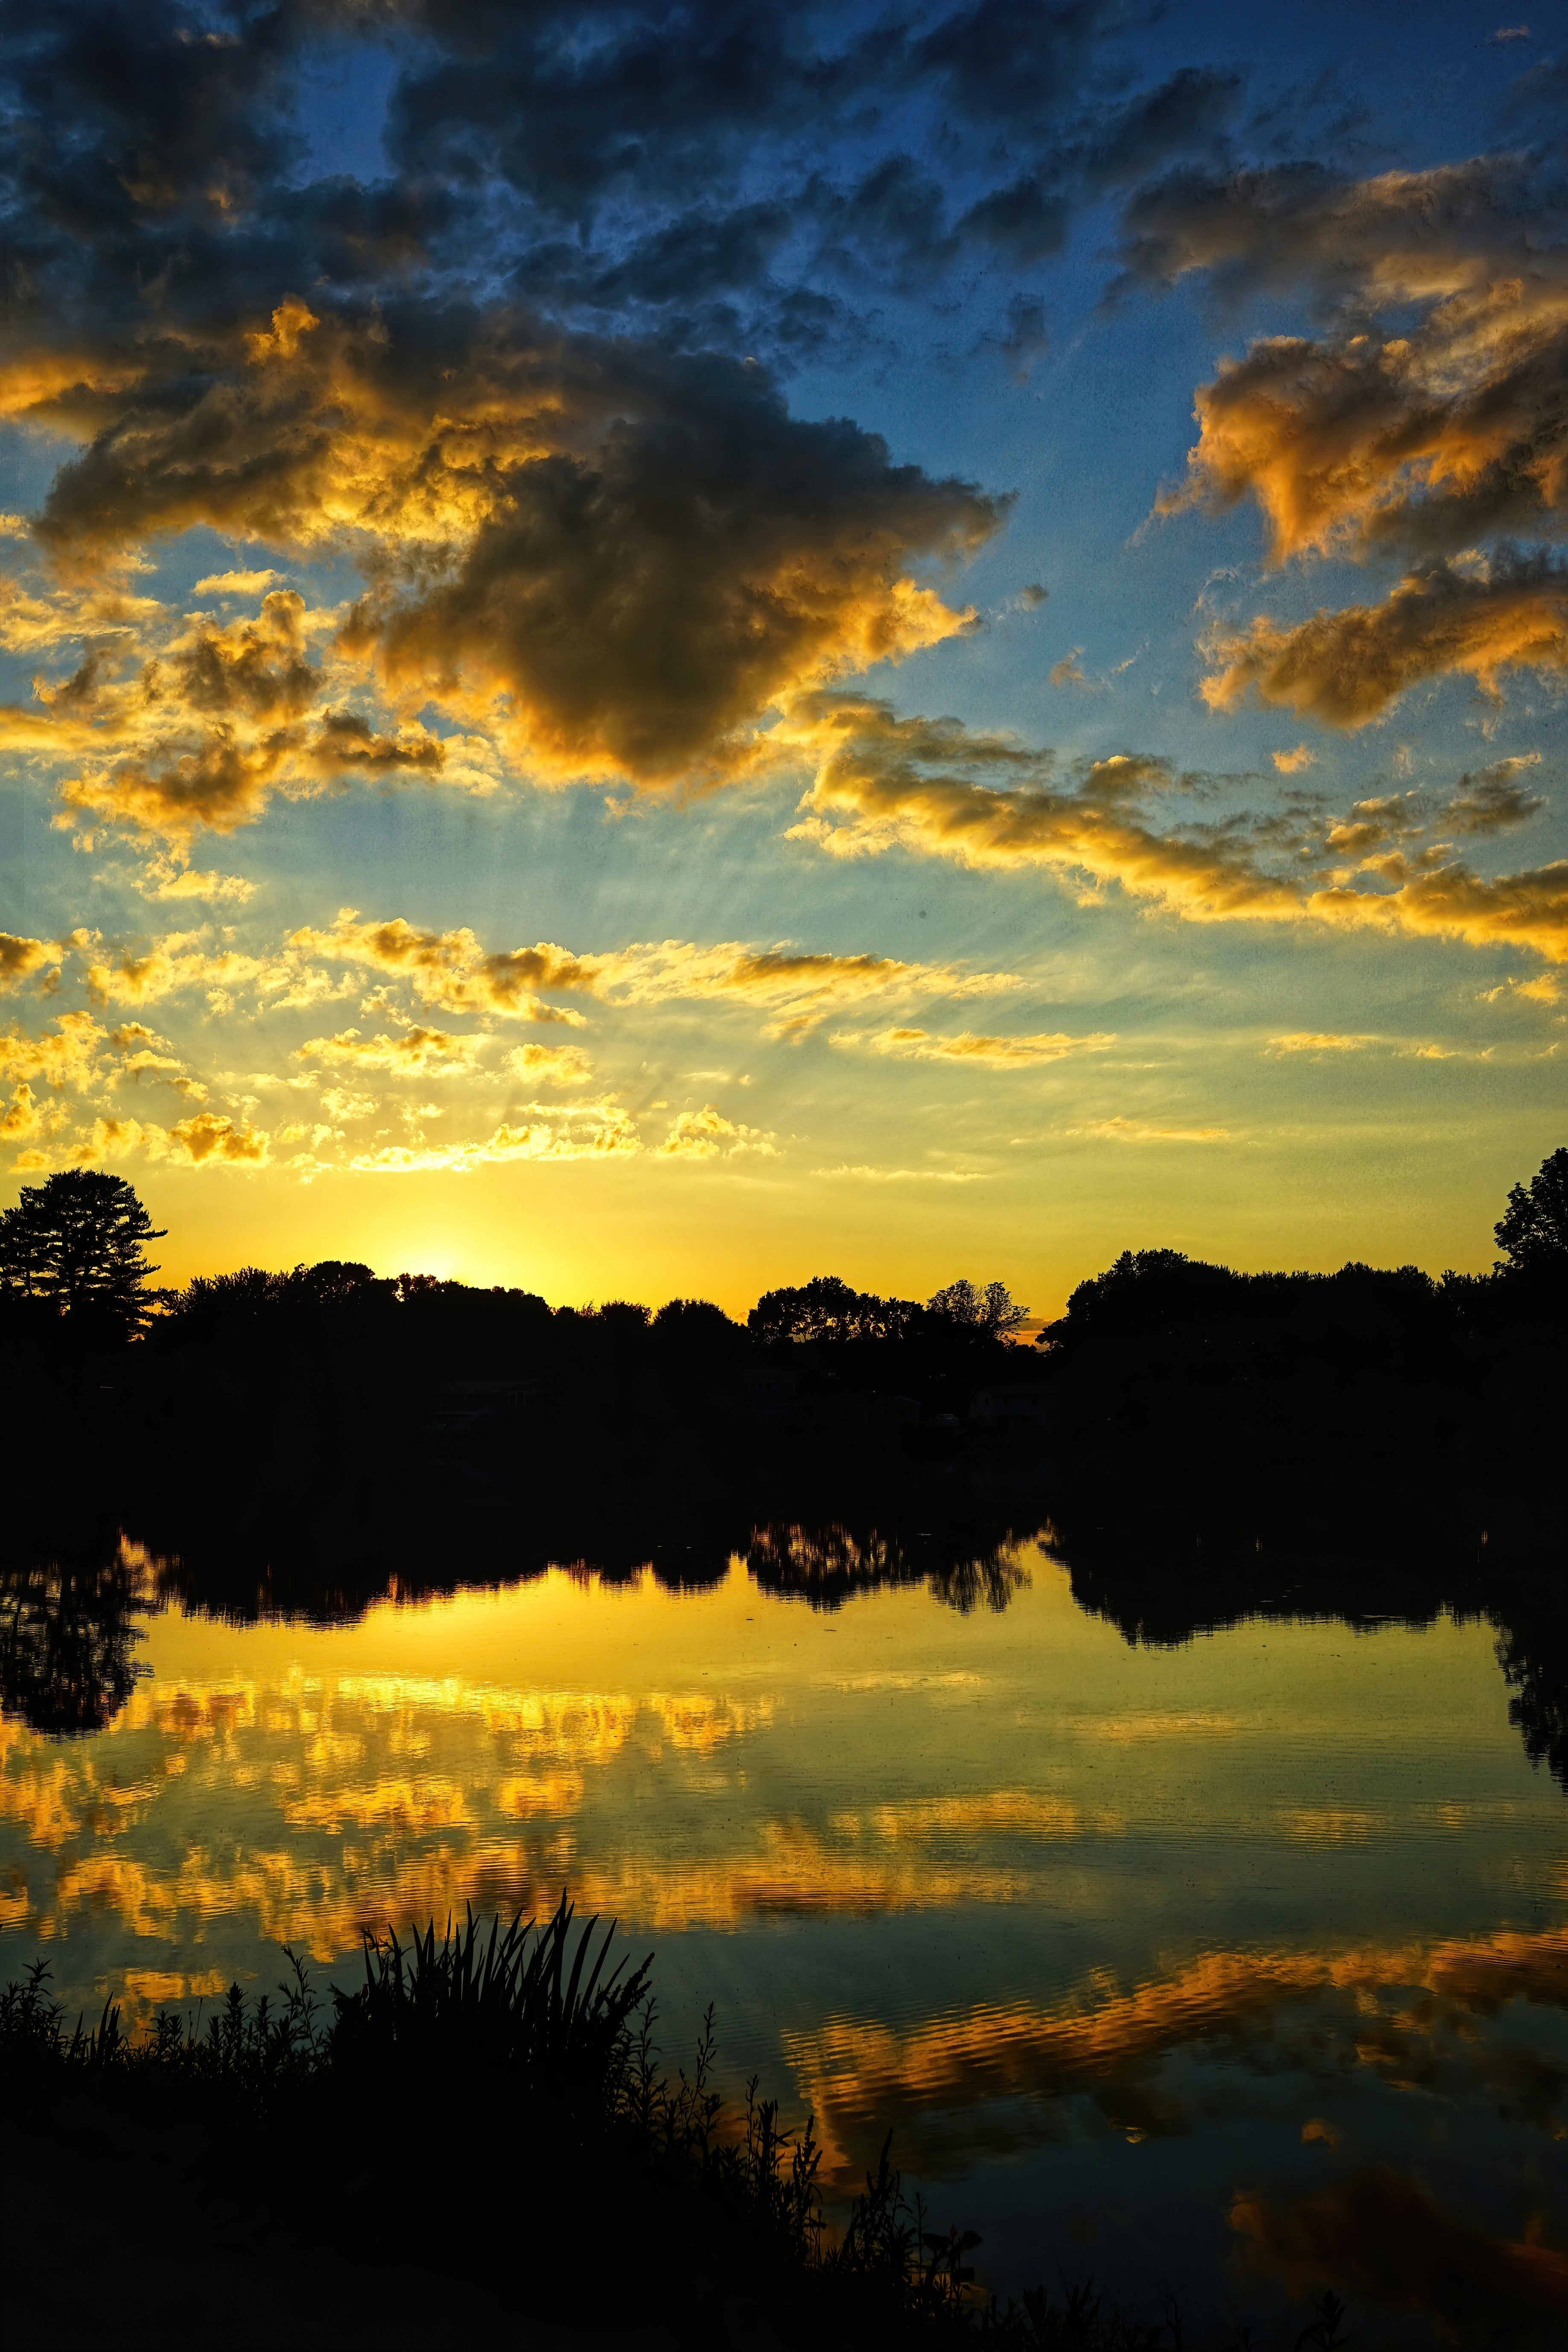 Sunset at Fulton Pond in Mansfield